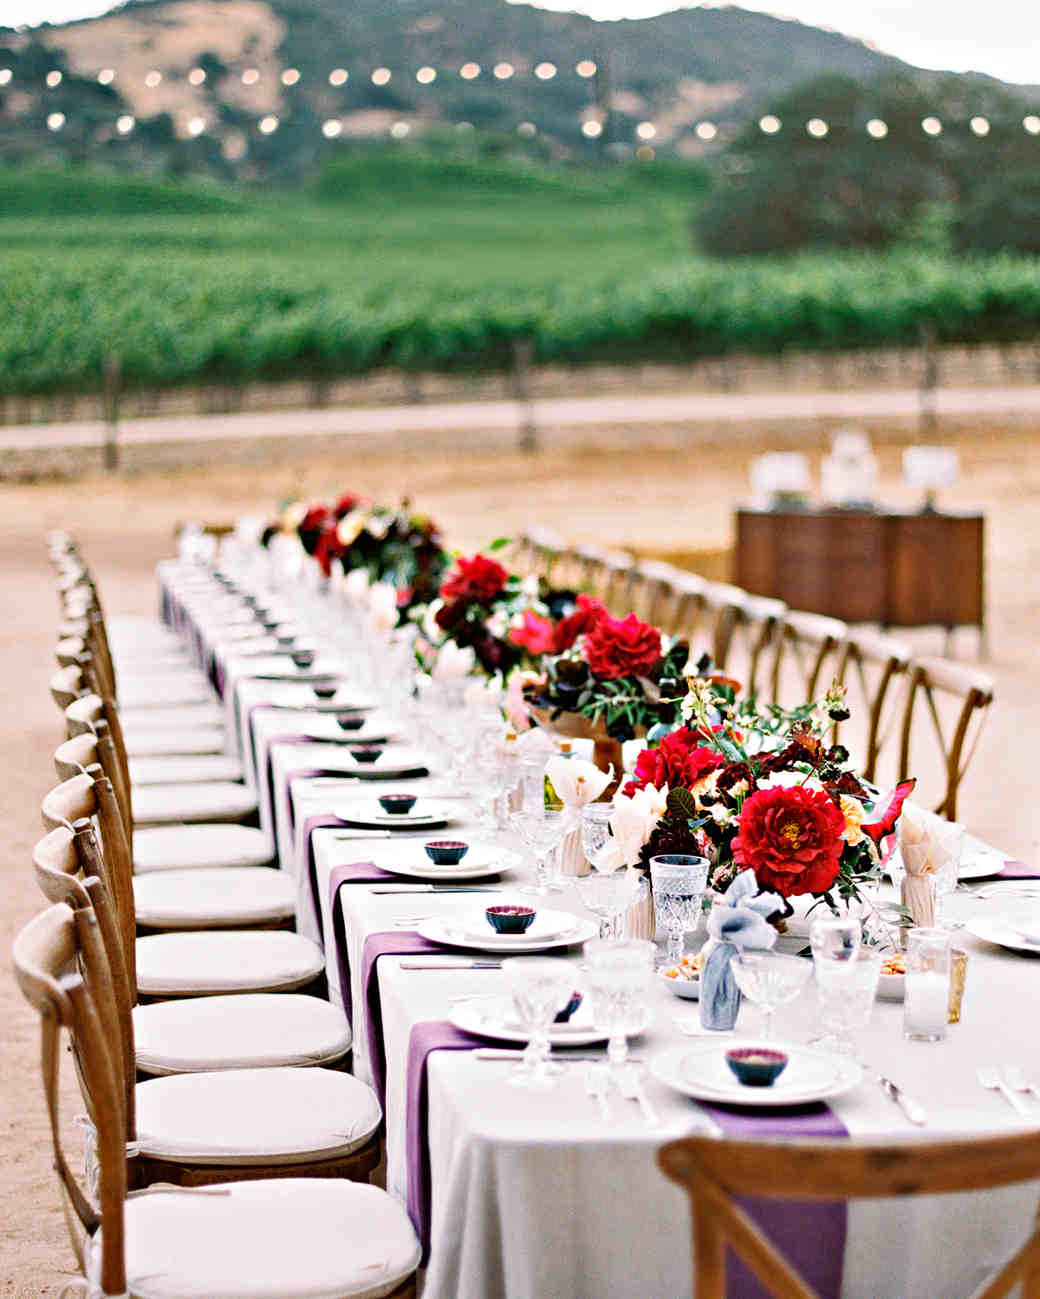 Wedding Table Decorations: 42 Stunning Banquet Tables For Your Reception